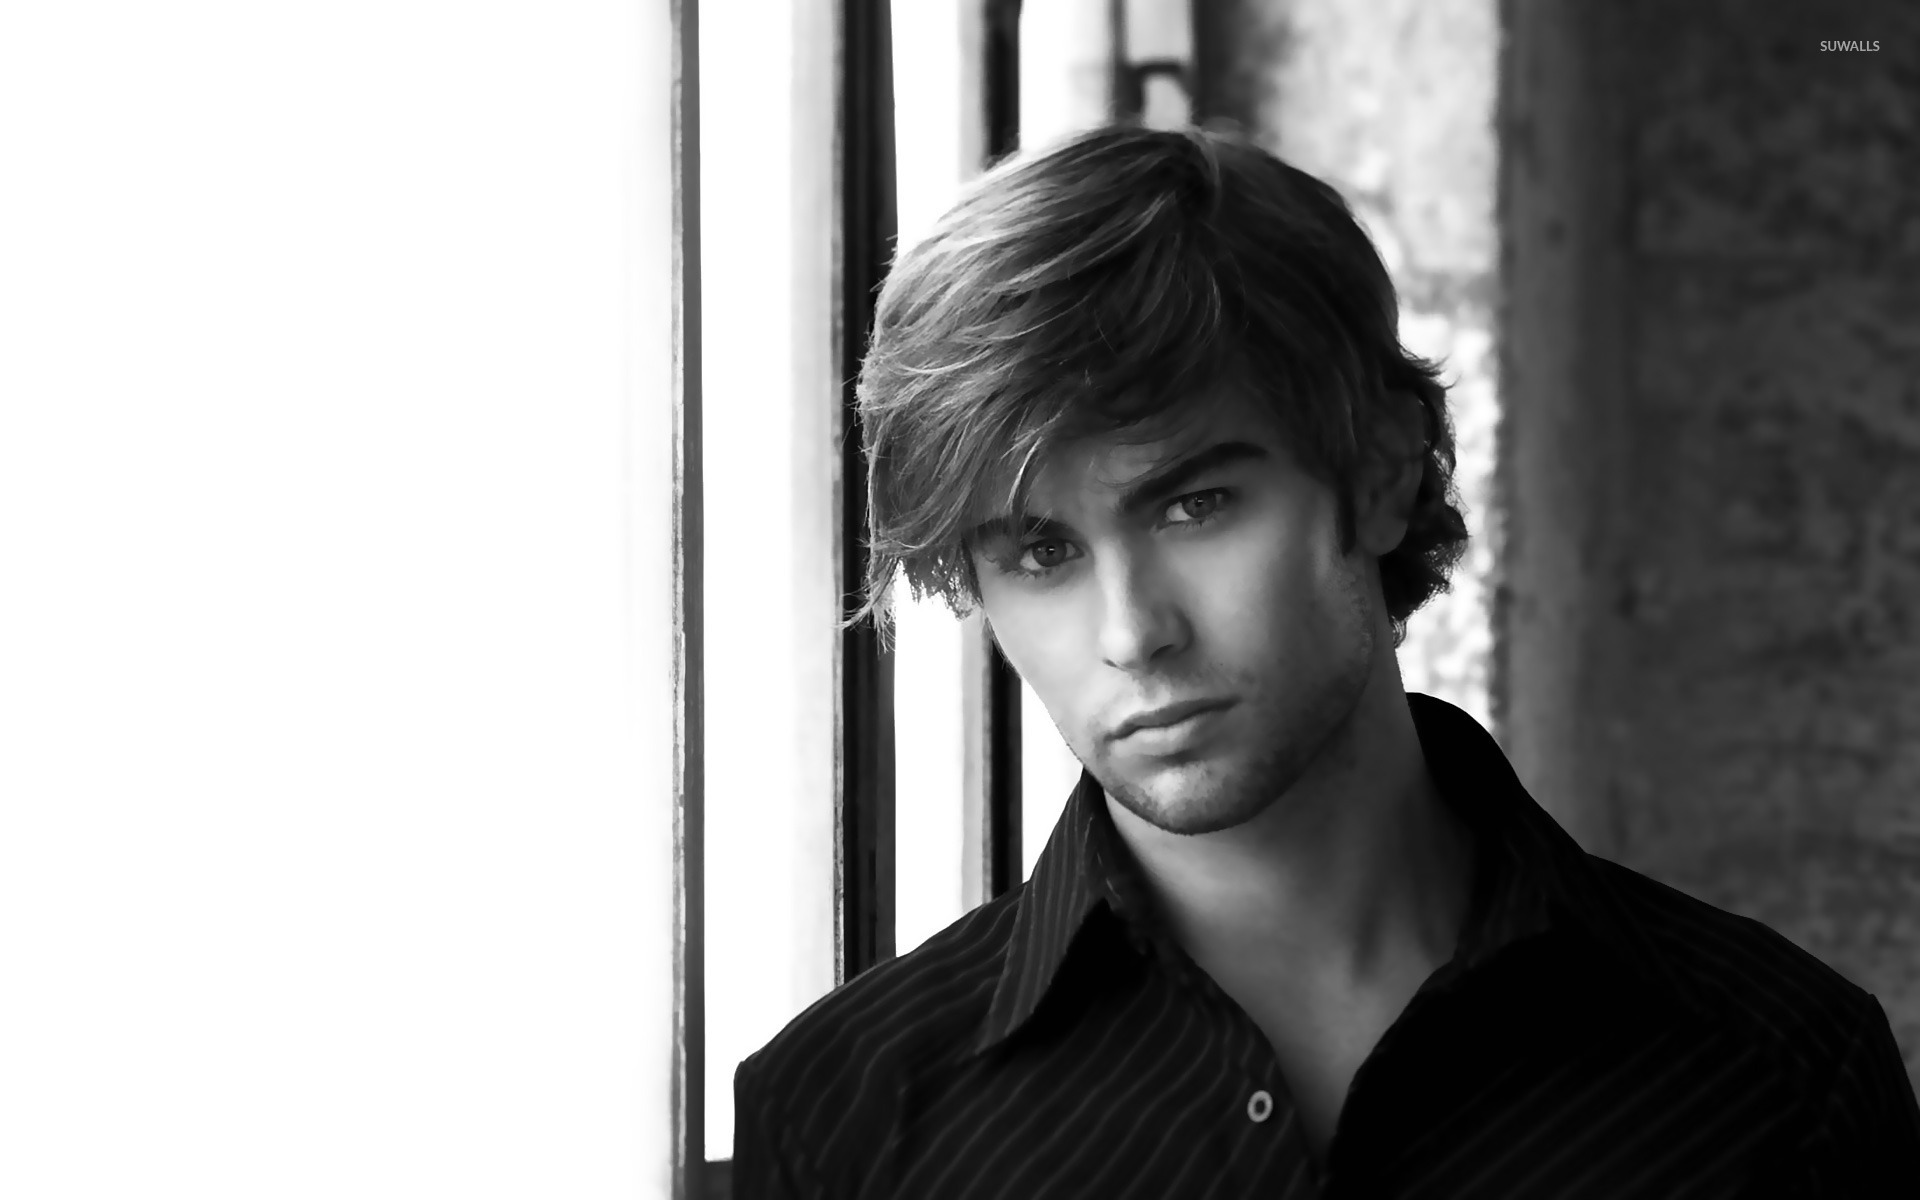 Cartoon pictures of chace crawford - Chace Crawford Wallpaper